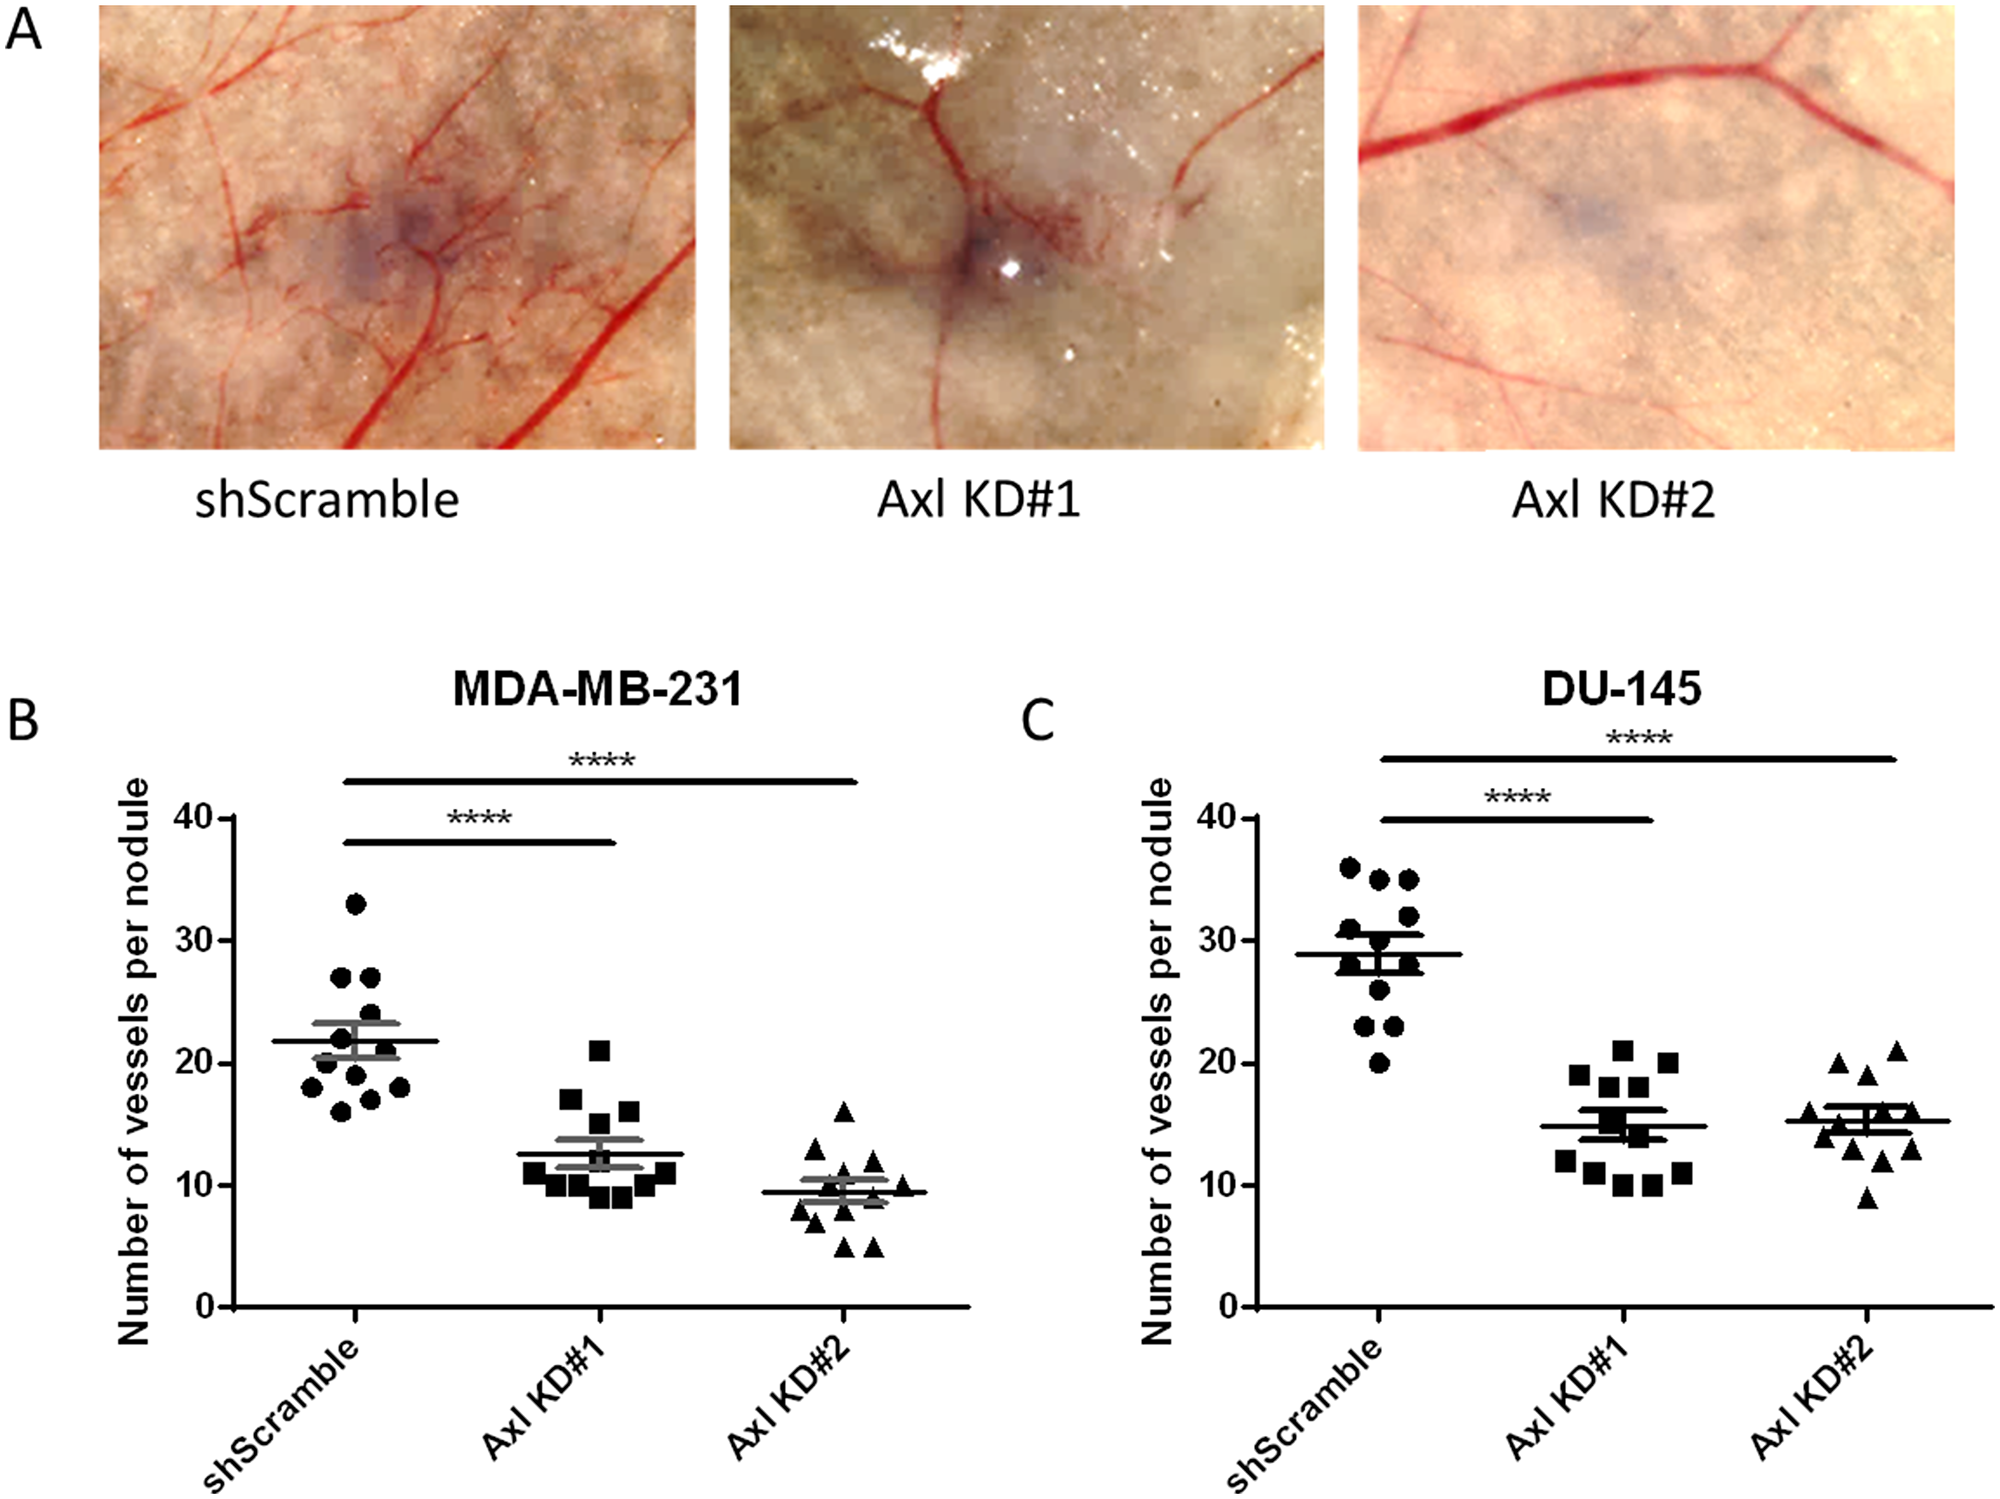 Axl knockdown of tumor cells suppresses tumor cell-induced angiogenesis in vivo.